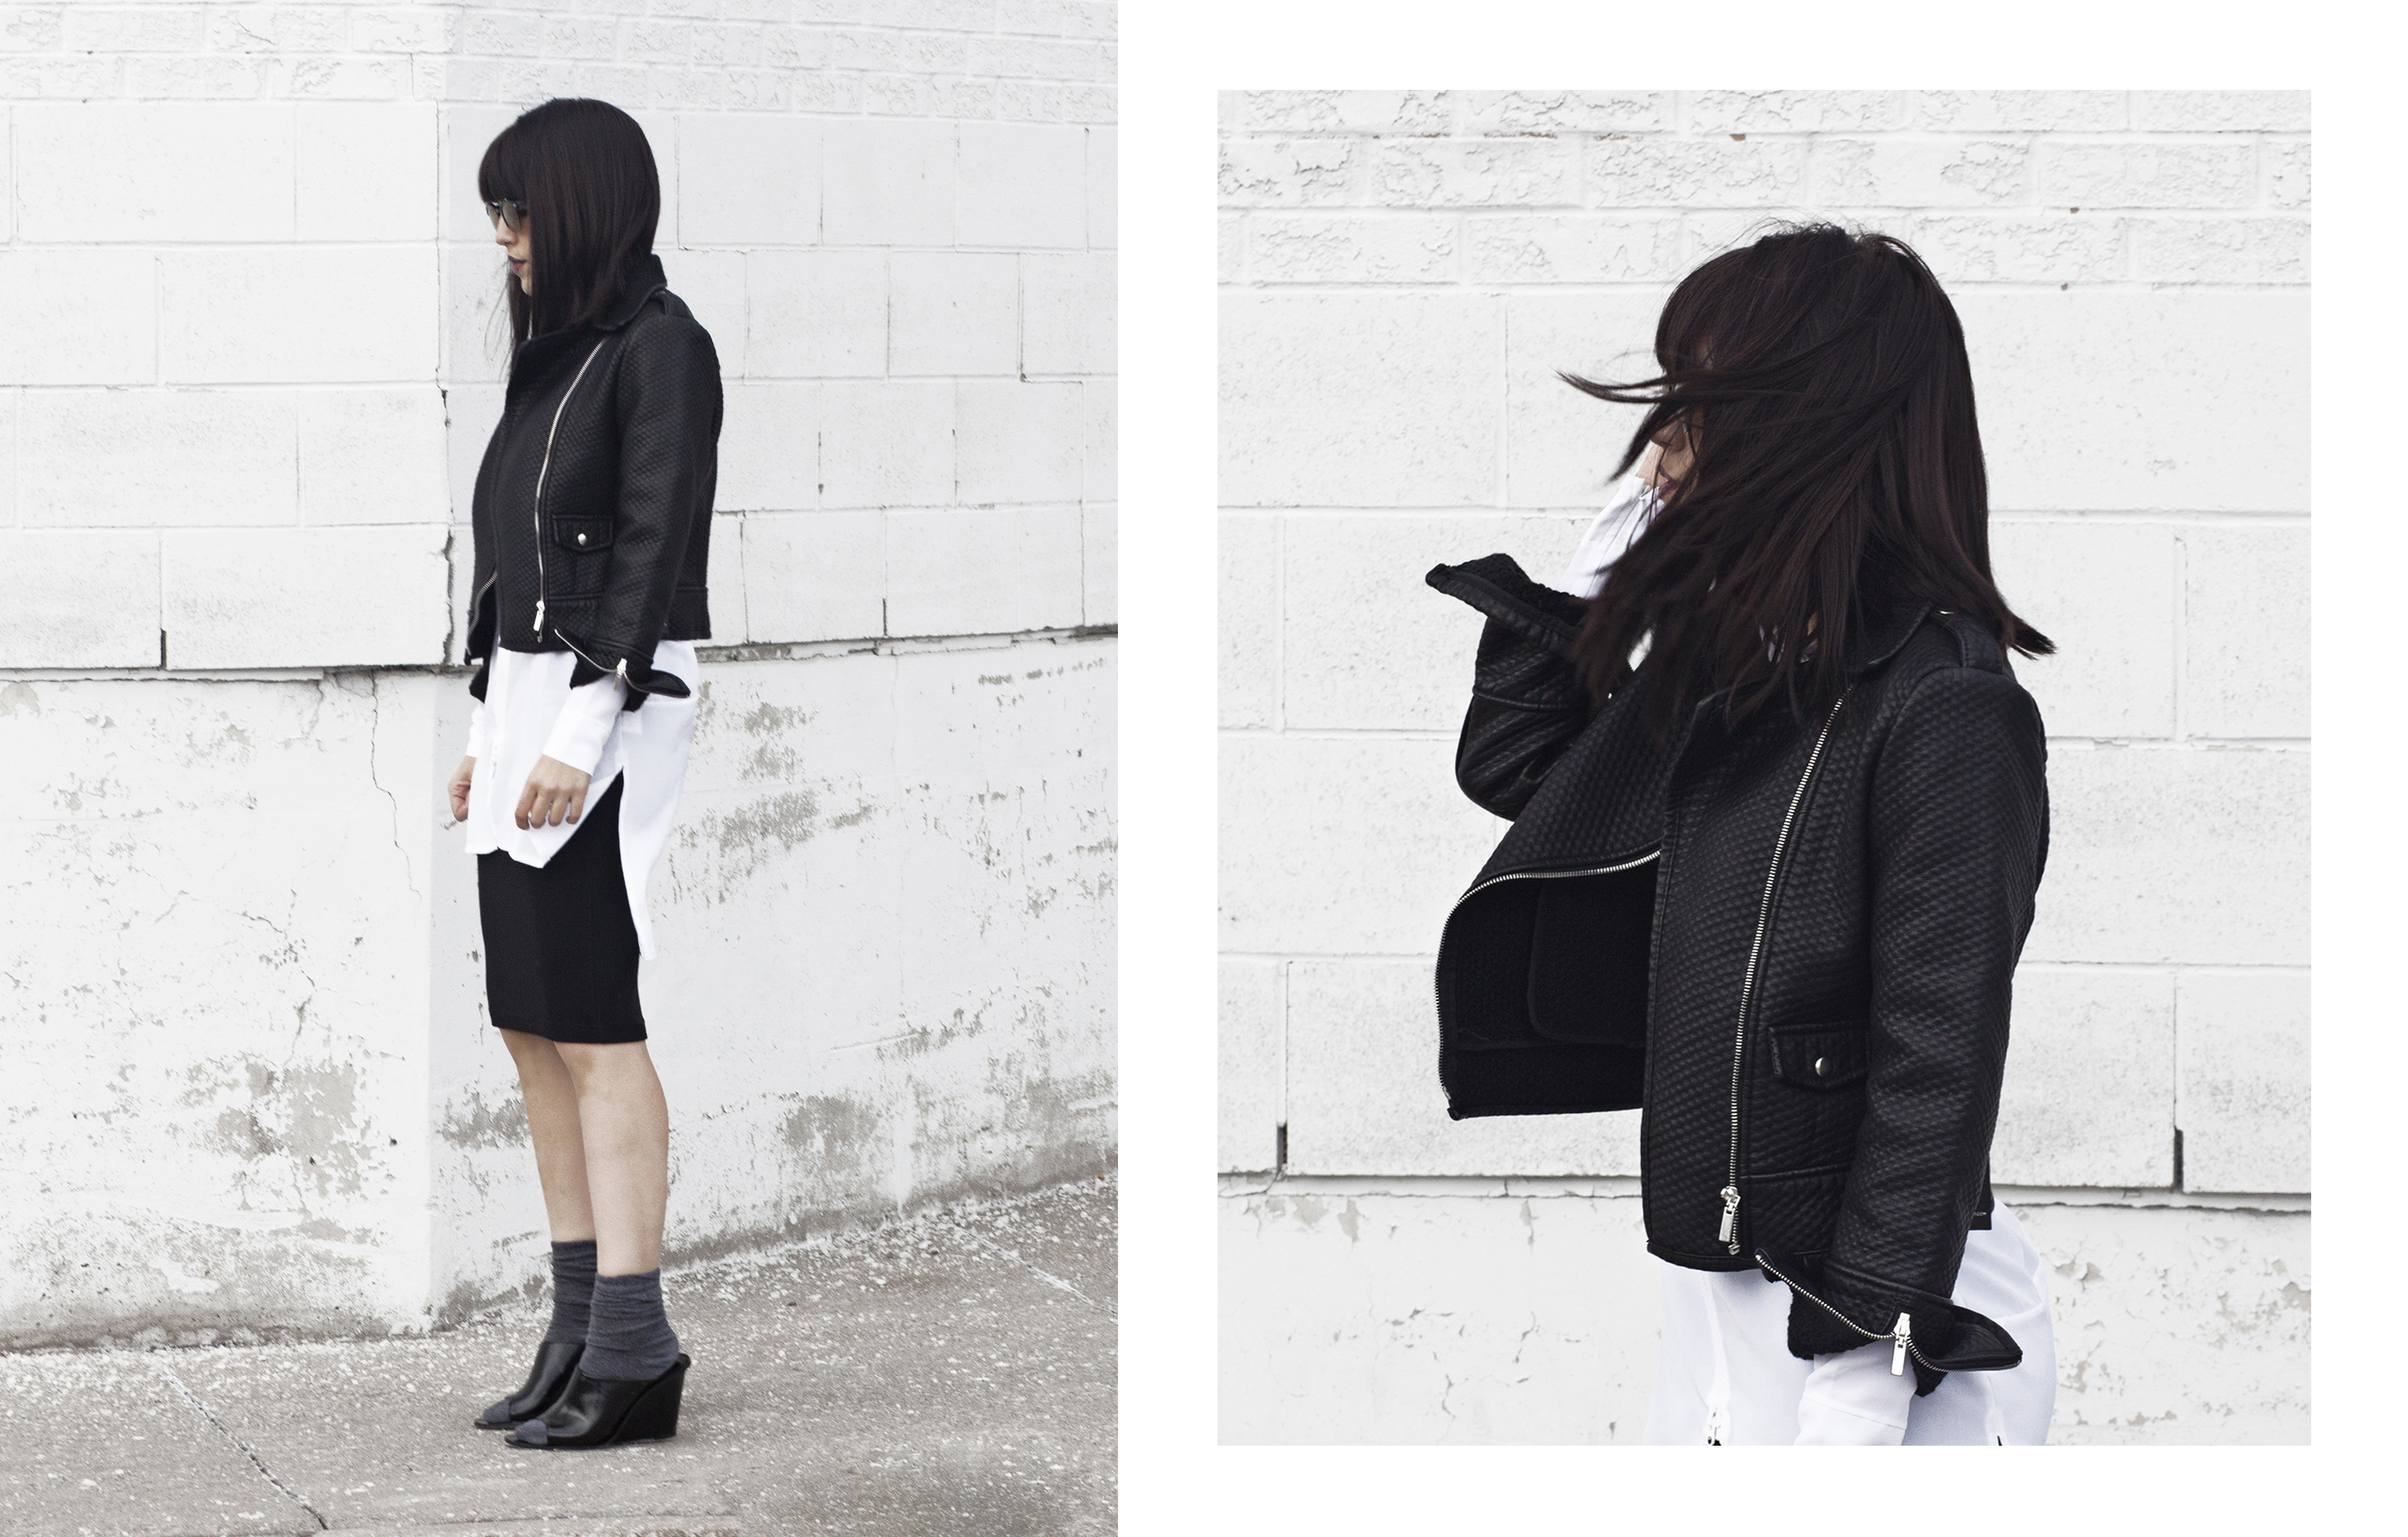 textured-leather-jacket-mules-streetstyle-collage-2